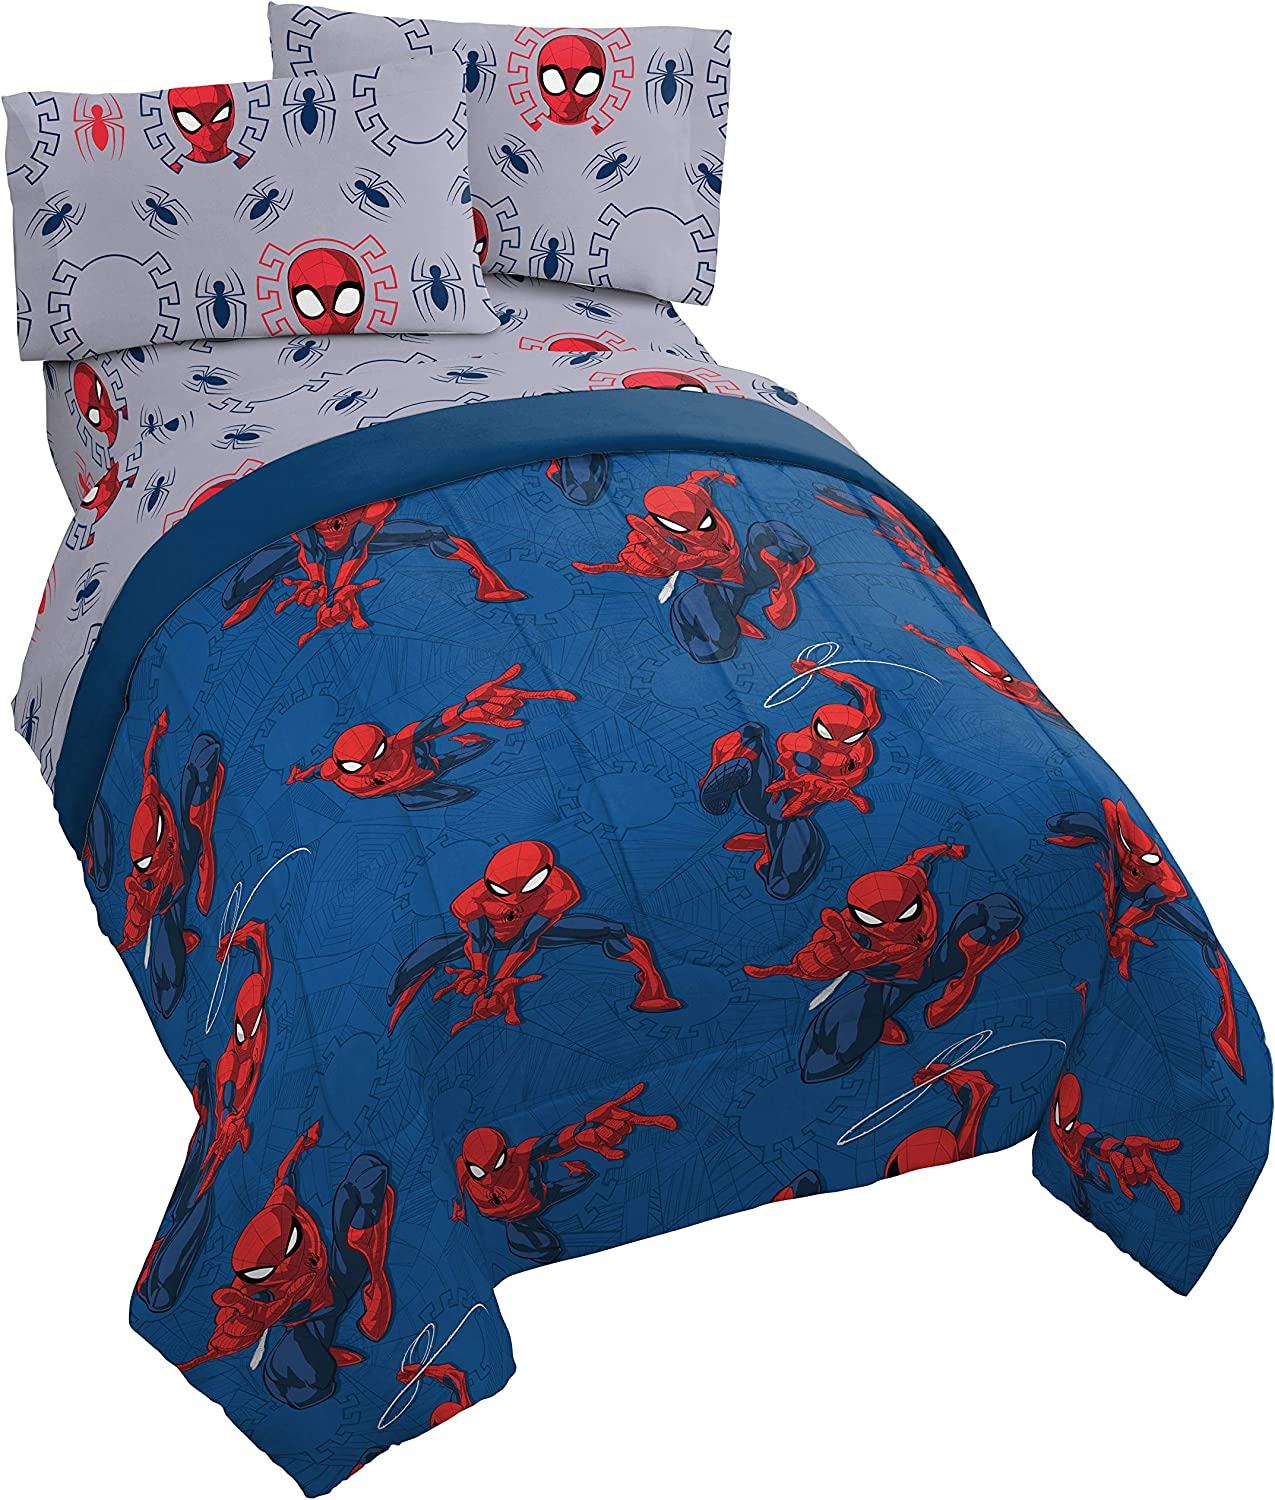 Jay Franco Marvel Spiderman Spidey Crawl 5 Piece Full Bed Set - Includes Reversible Comforter & Sheet Set - Super Soft Fade Resistant Polyester - (Official Marvel Product)…